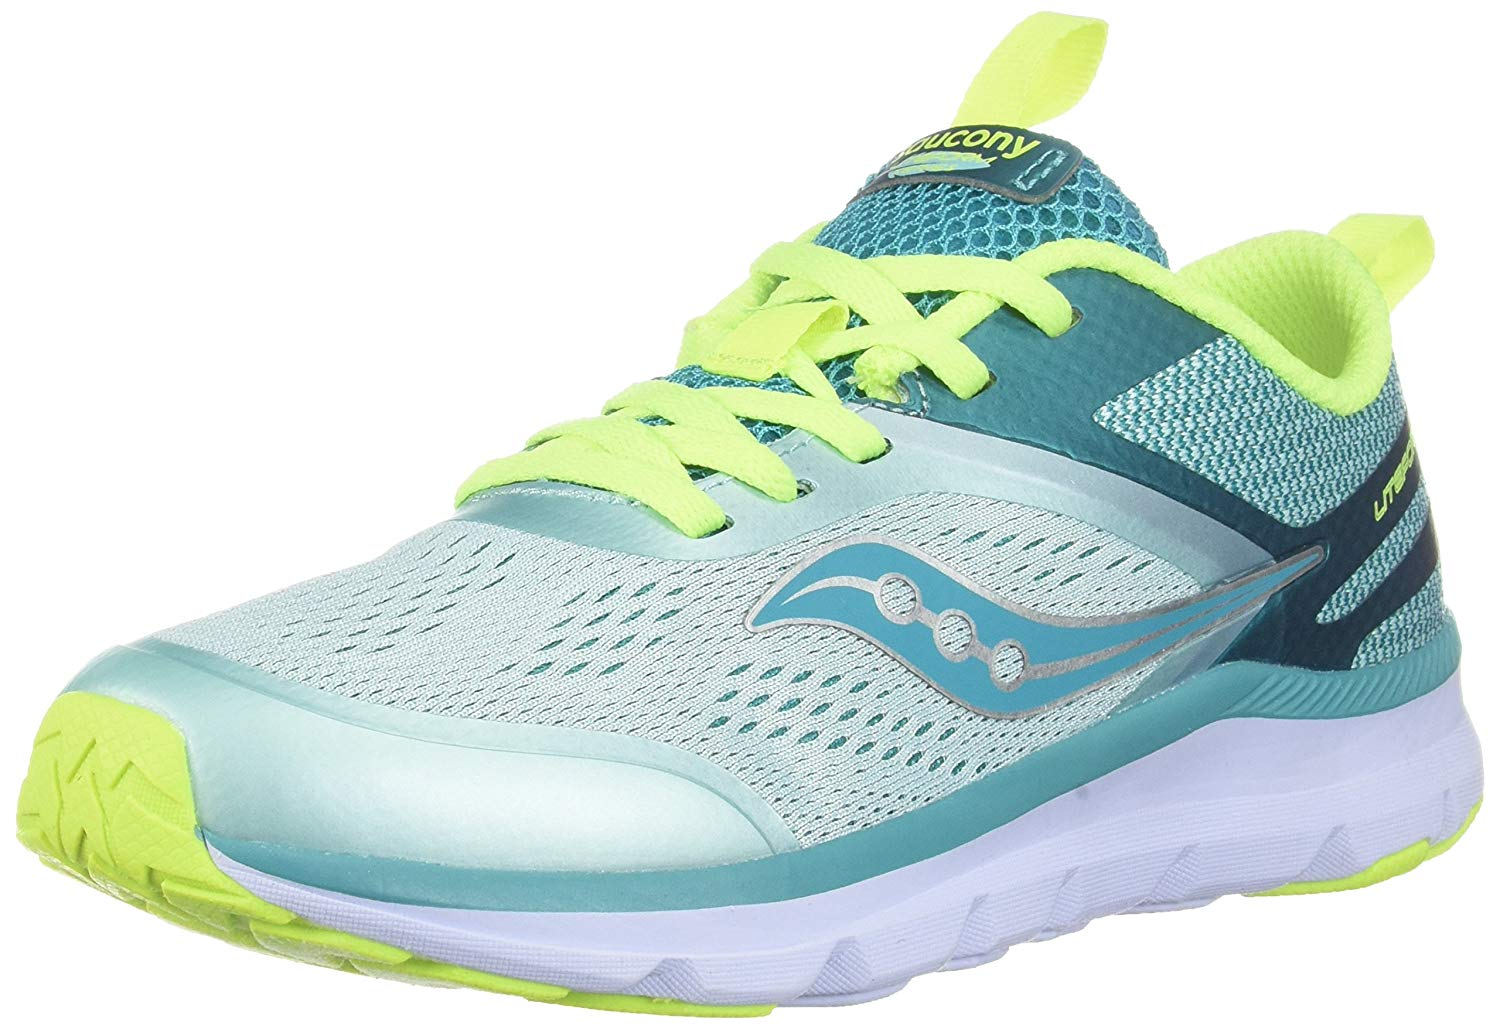 Details about Kids Saucony Girls Liteform Miles Fabric Low Top Lace Up, TurqCitron, Size 7.0